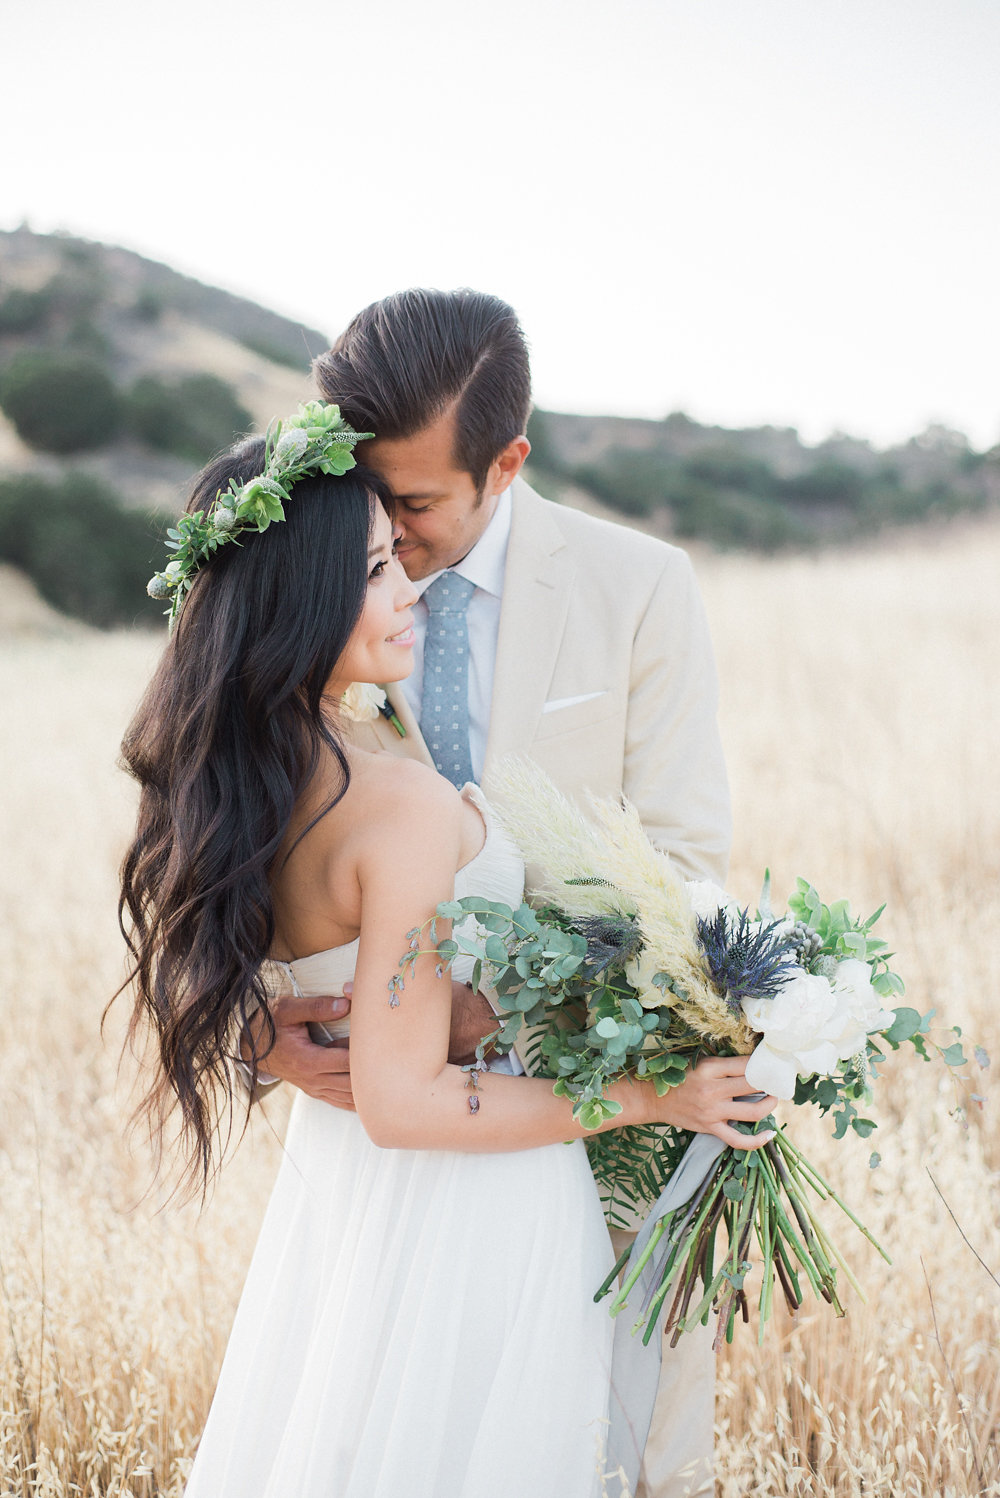 Organic Wedding Inspiration with Shades of Blue - photo by Anya Kernes Photography http://ruffledblog.com/organic-wedding-inspiration-with-shades-of-blue